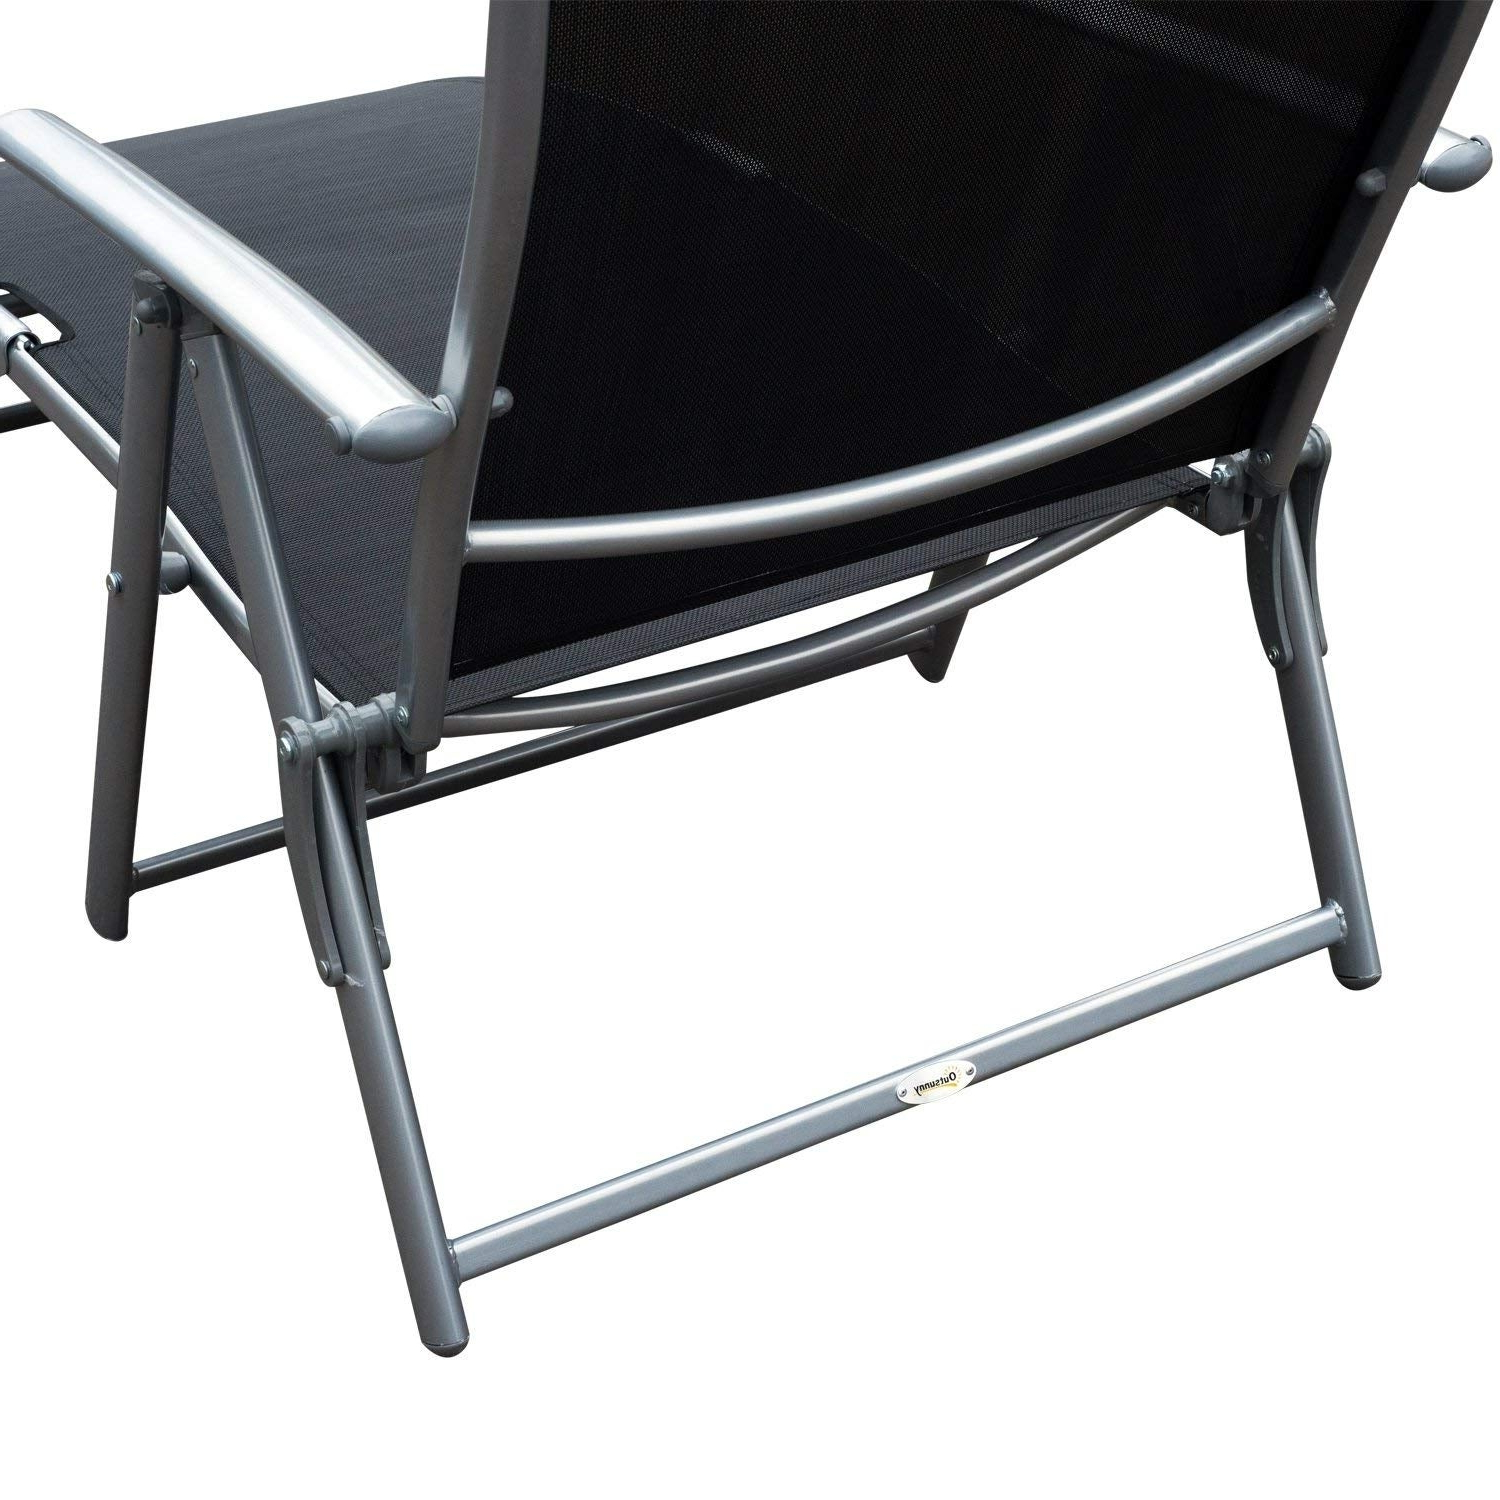 Favorite Outsunny Steel Sling Fabric Outdoor Folding Chaise Lounge Chair Recliner –  Black For Steel Sling Fabric Outdoor Folding Chaise Lounges (View 4 of 25)